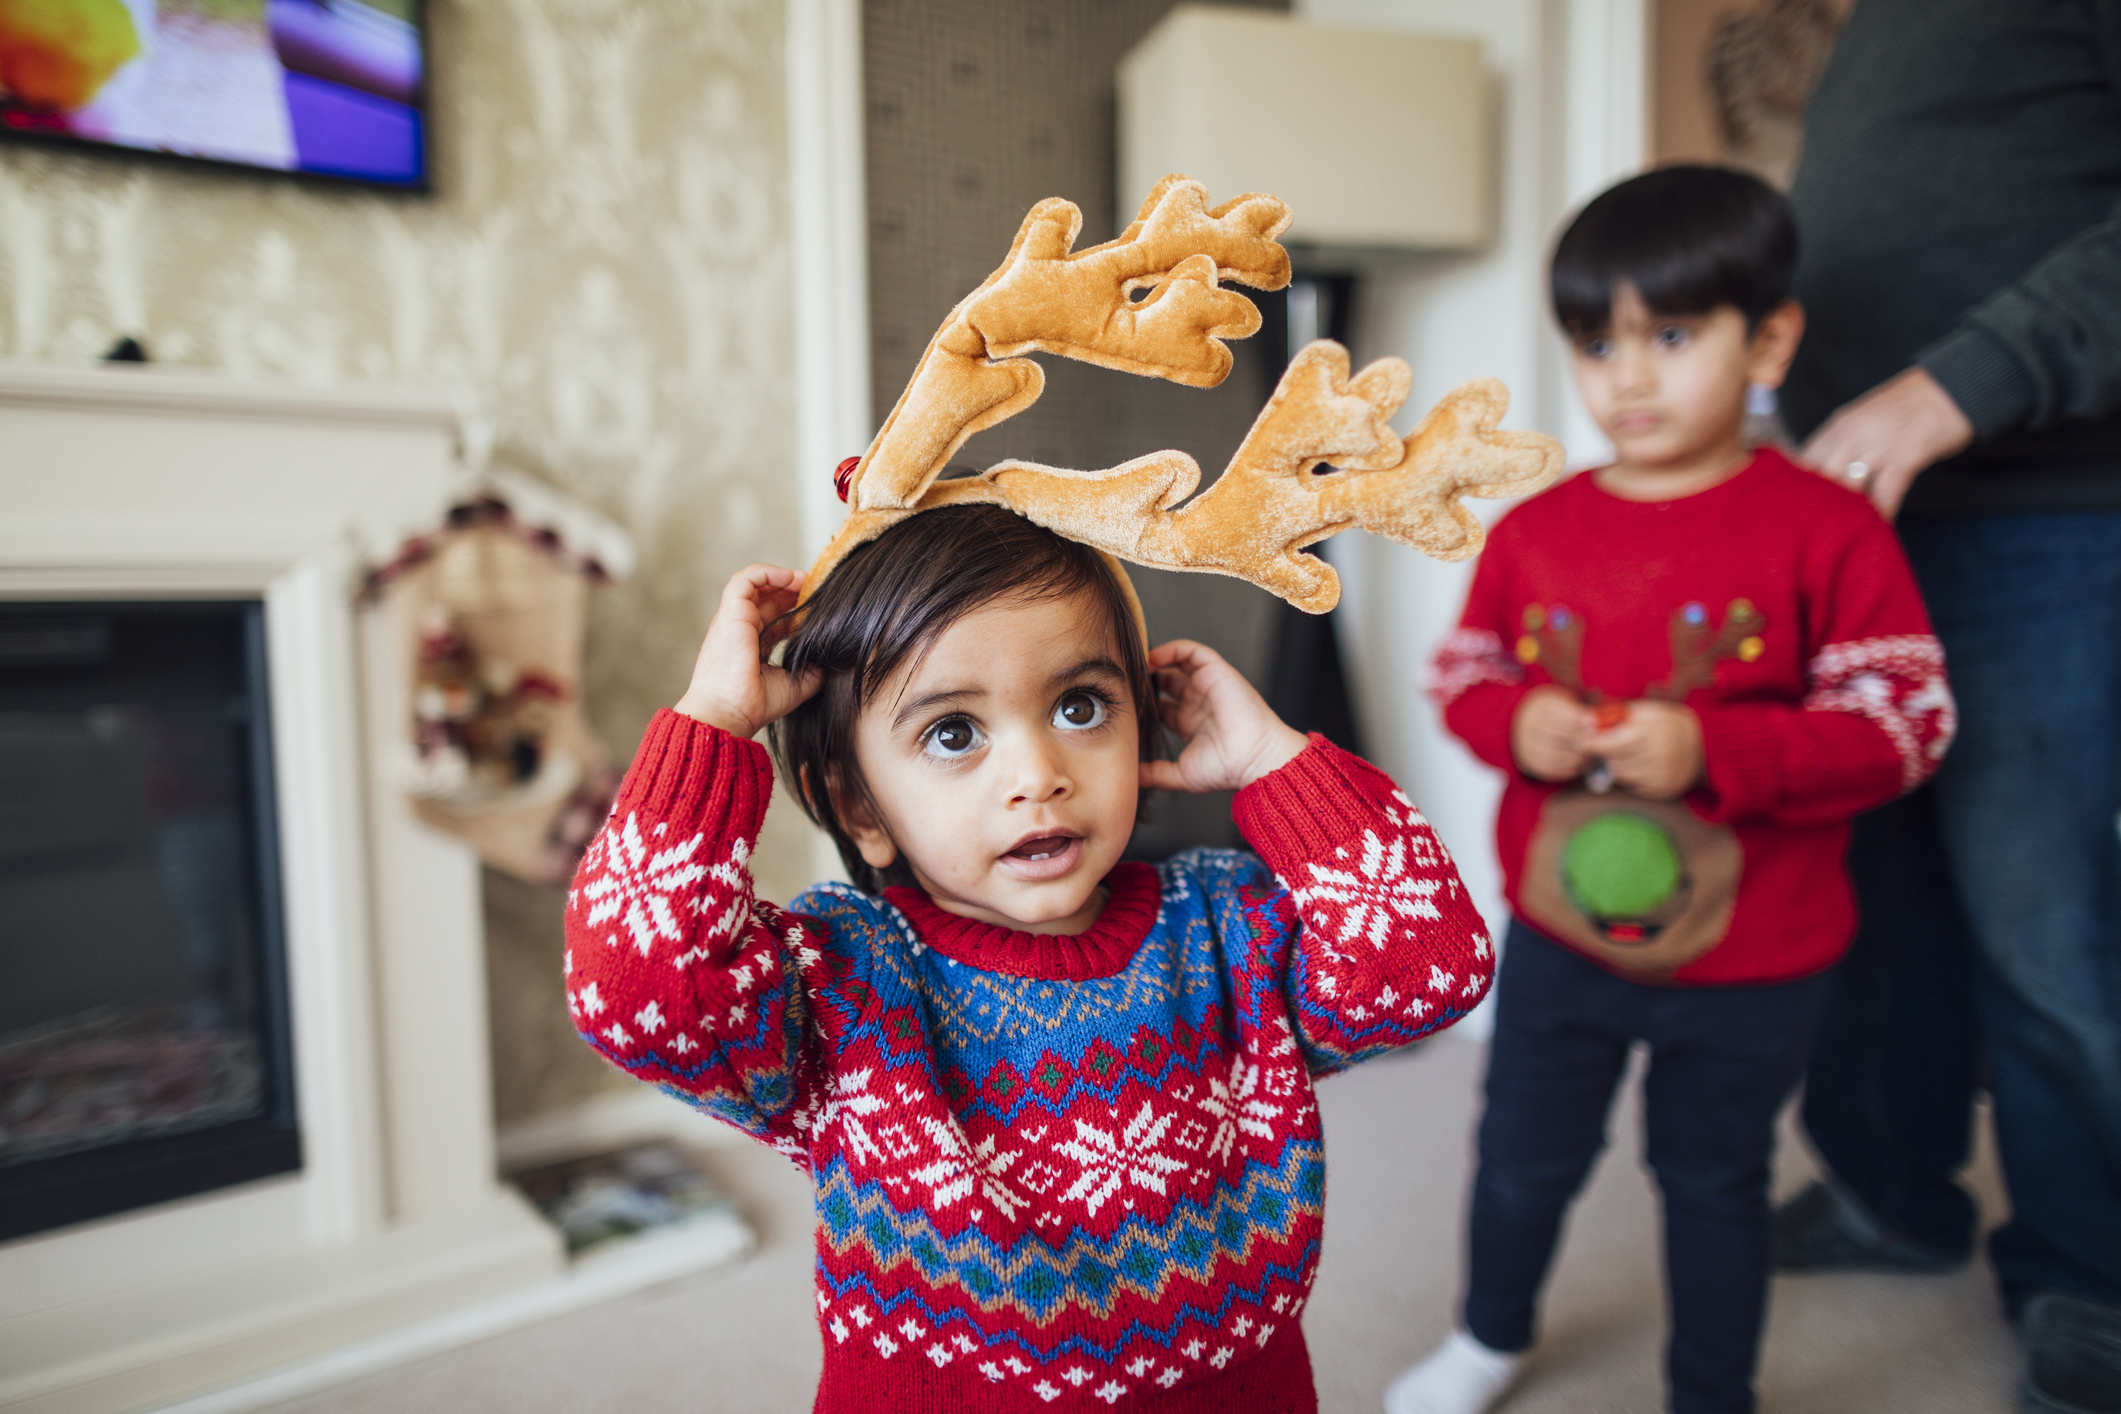 Don't miss Christmas jumper day this year if you love a festive tradition